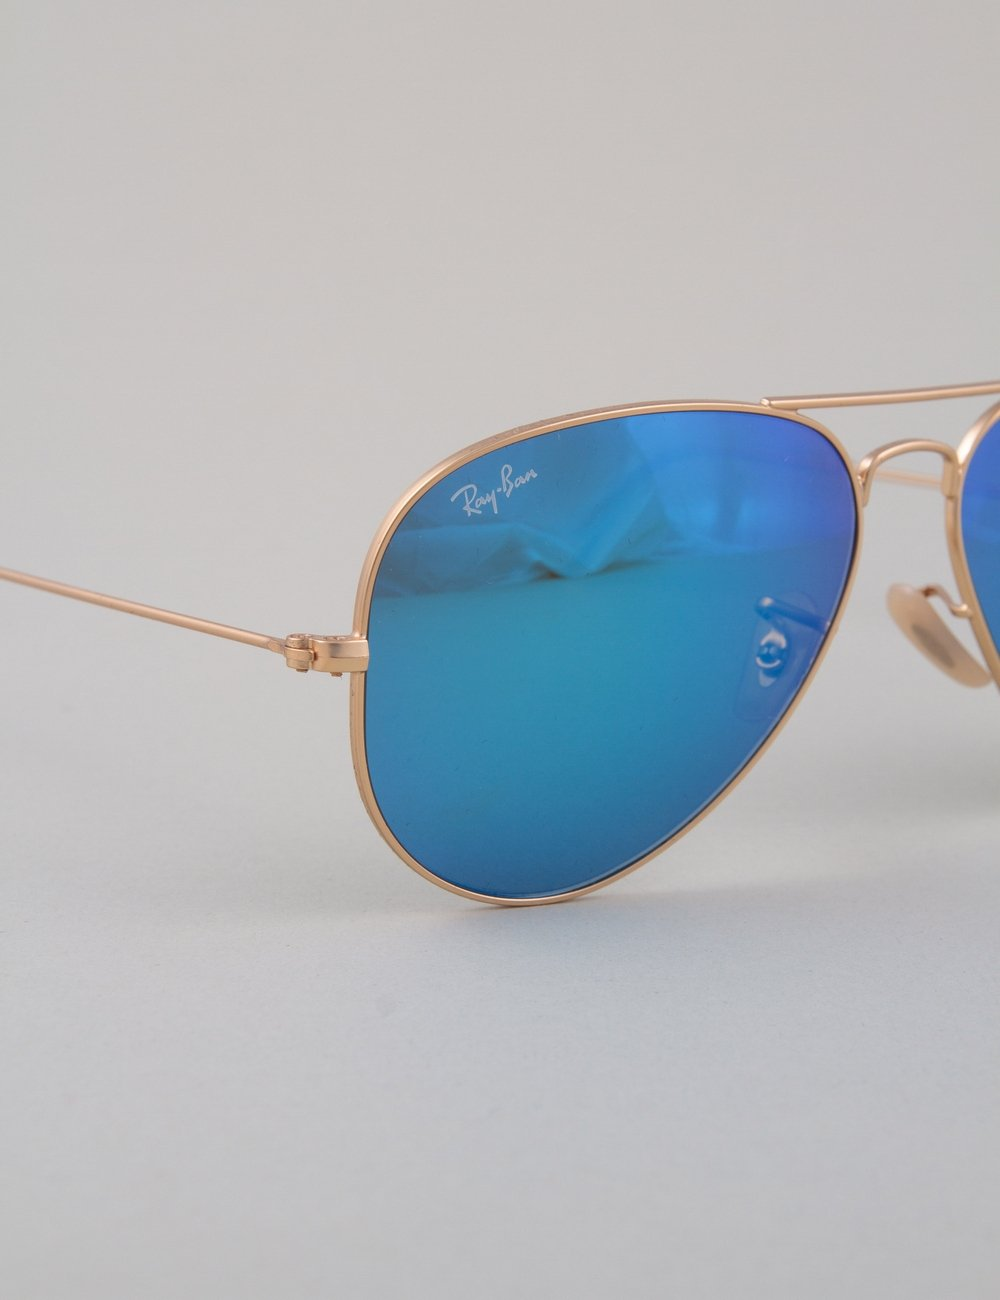 ray ban aviator large sunglasses matte gold mirror blue accessories from iconsume uk. Black Bedroom Furniture Sets. Home Design Ideas